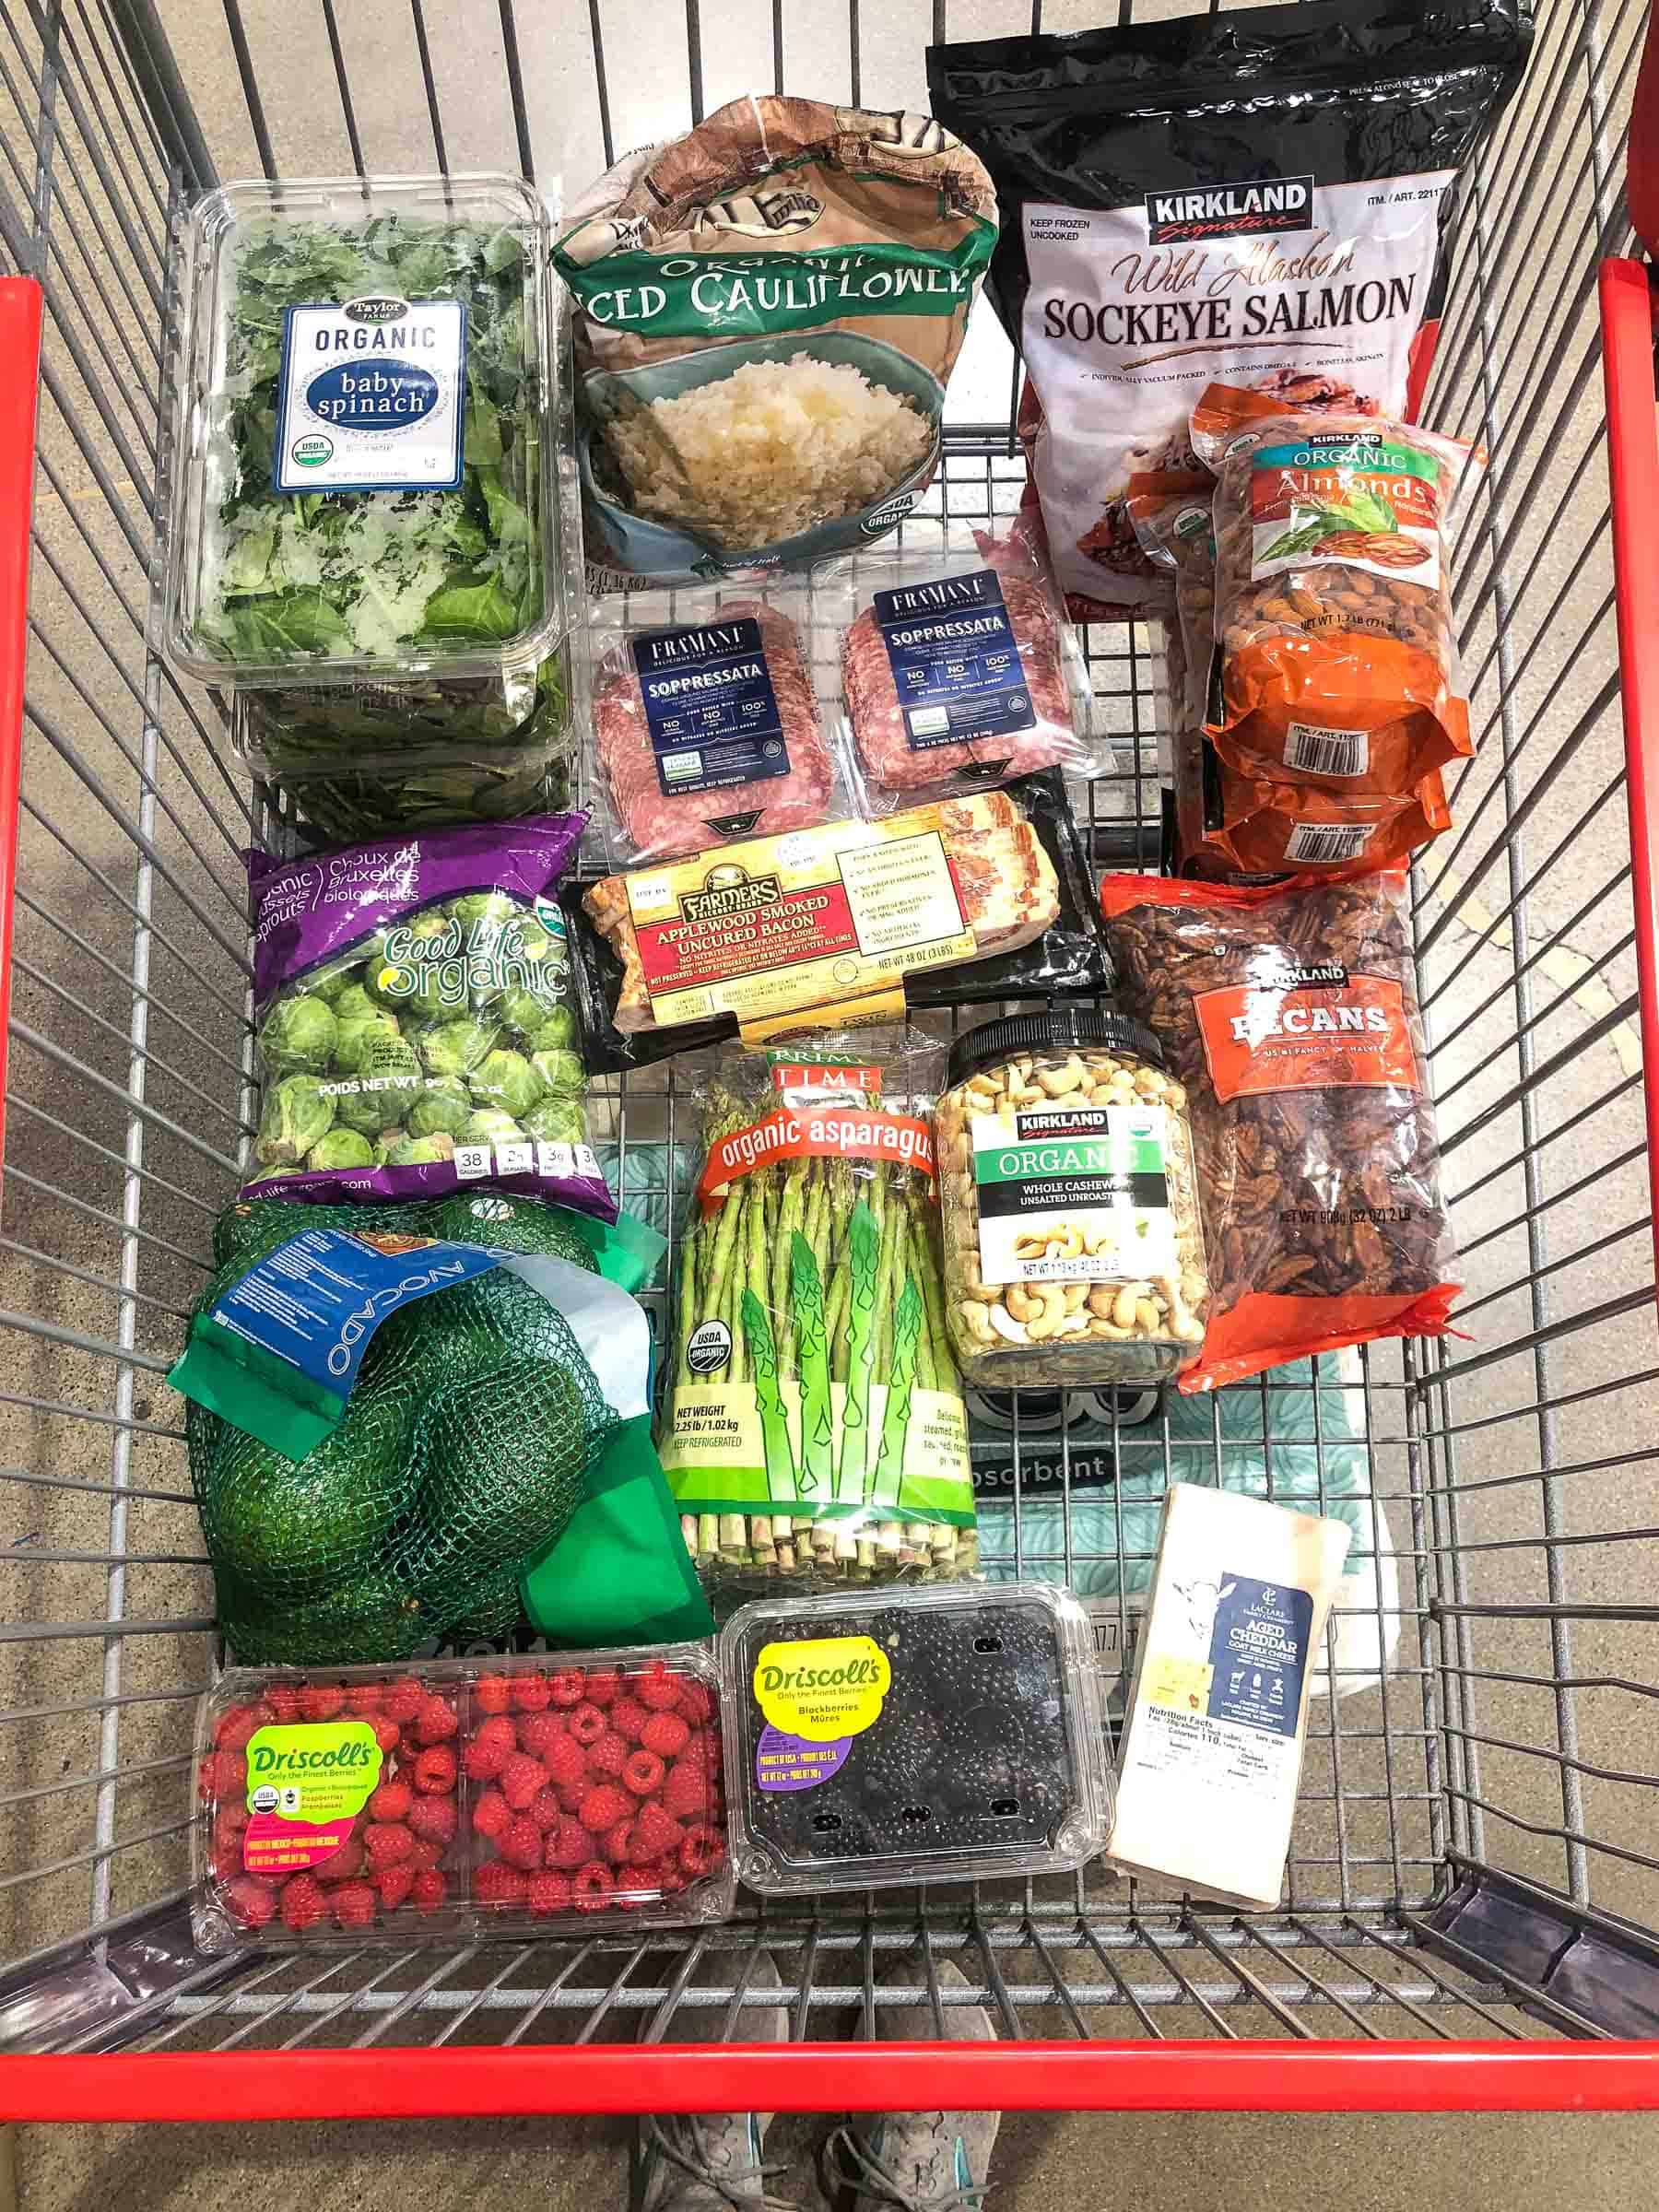 whole30 keto costco grocery haul groceries in a grocery cart